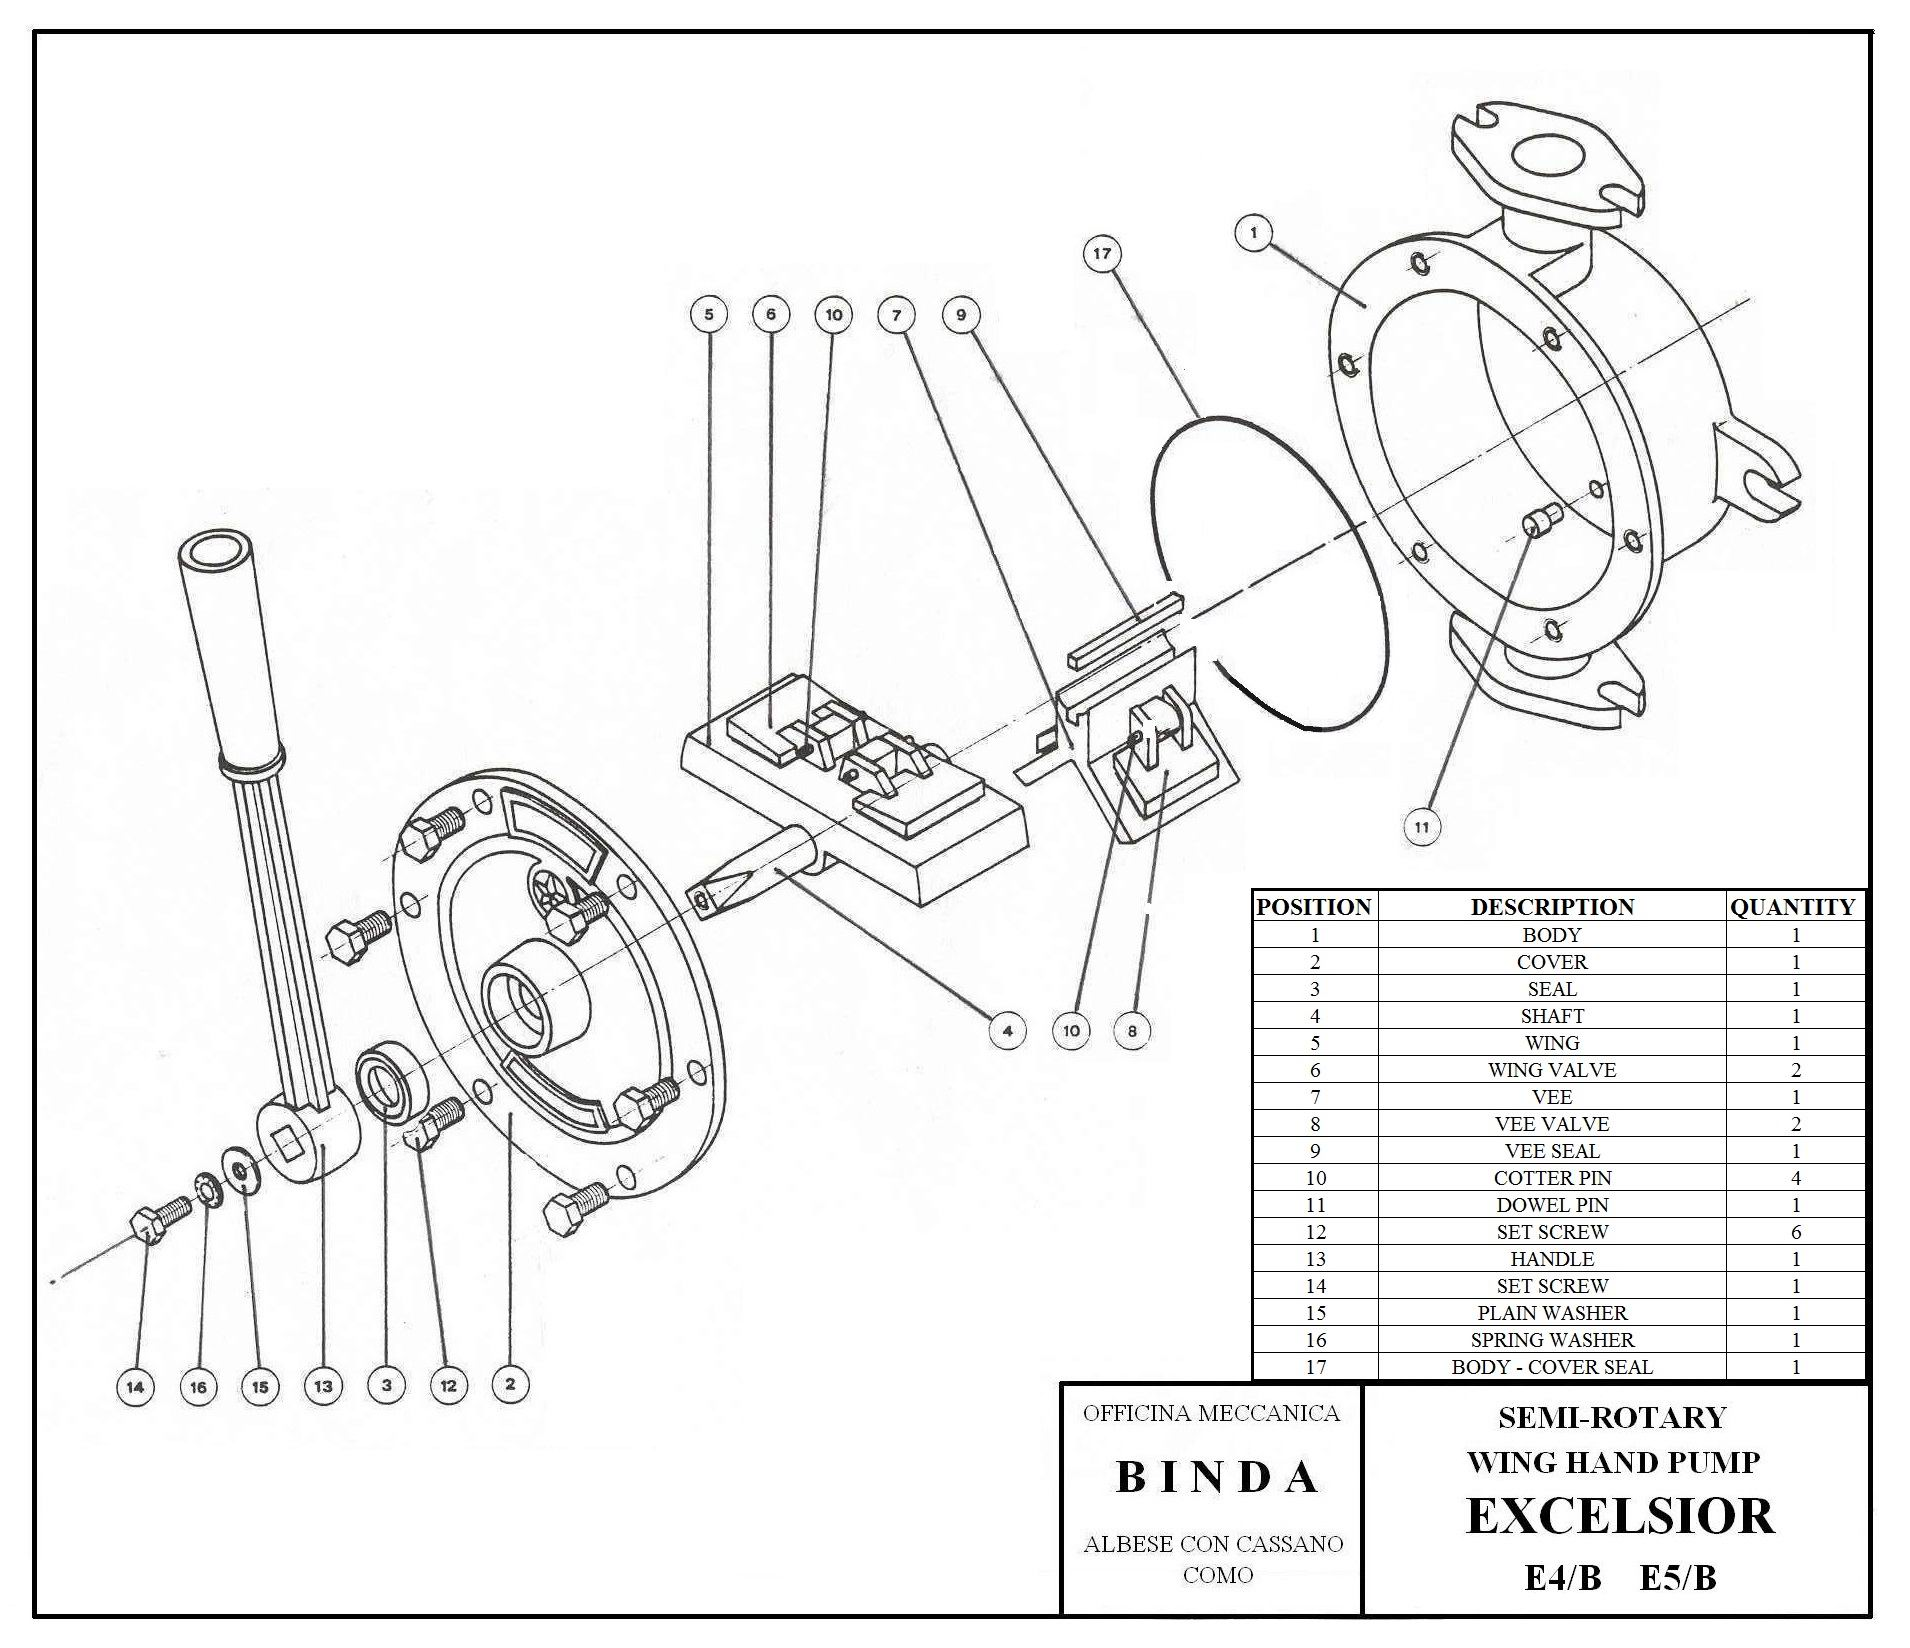 monarch hydraulic pump parts diagram